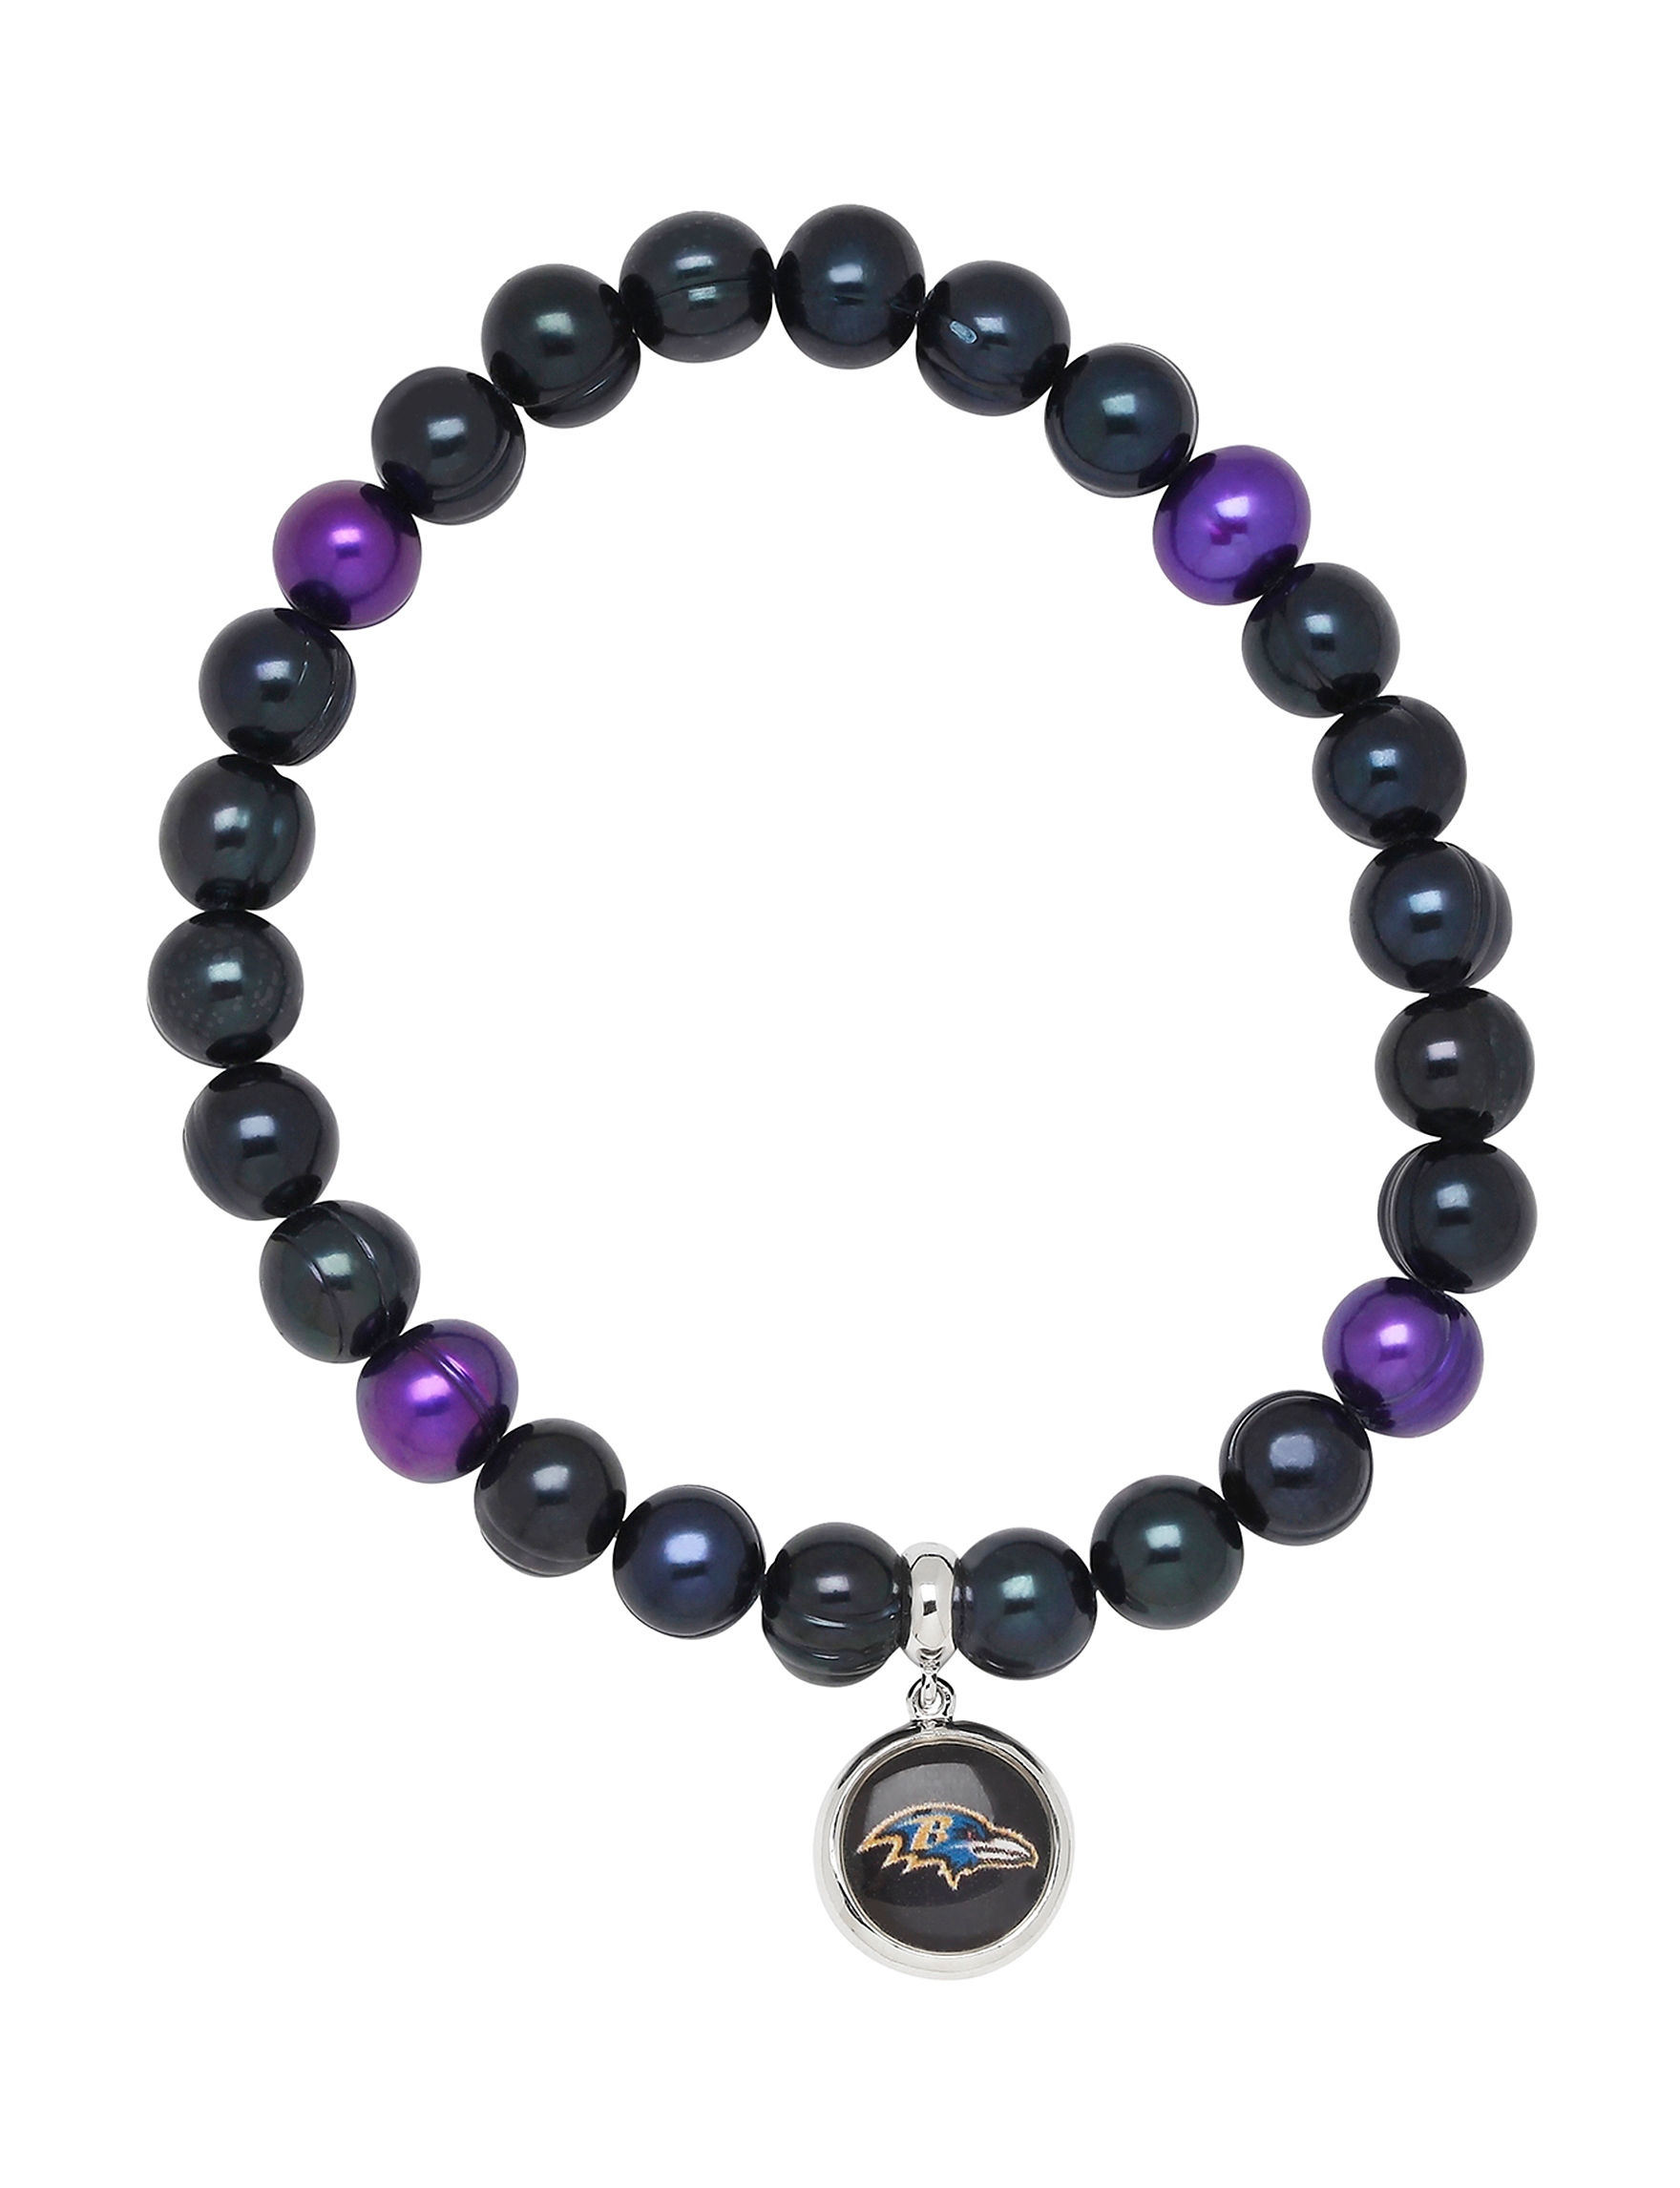 Aurafin Oro America Black/ Purple Bracelets Charms Fashion Jewelry